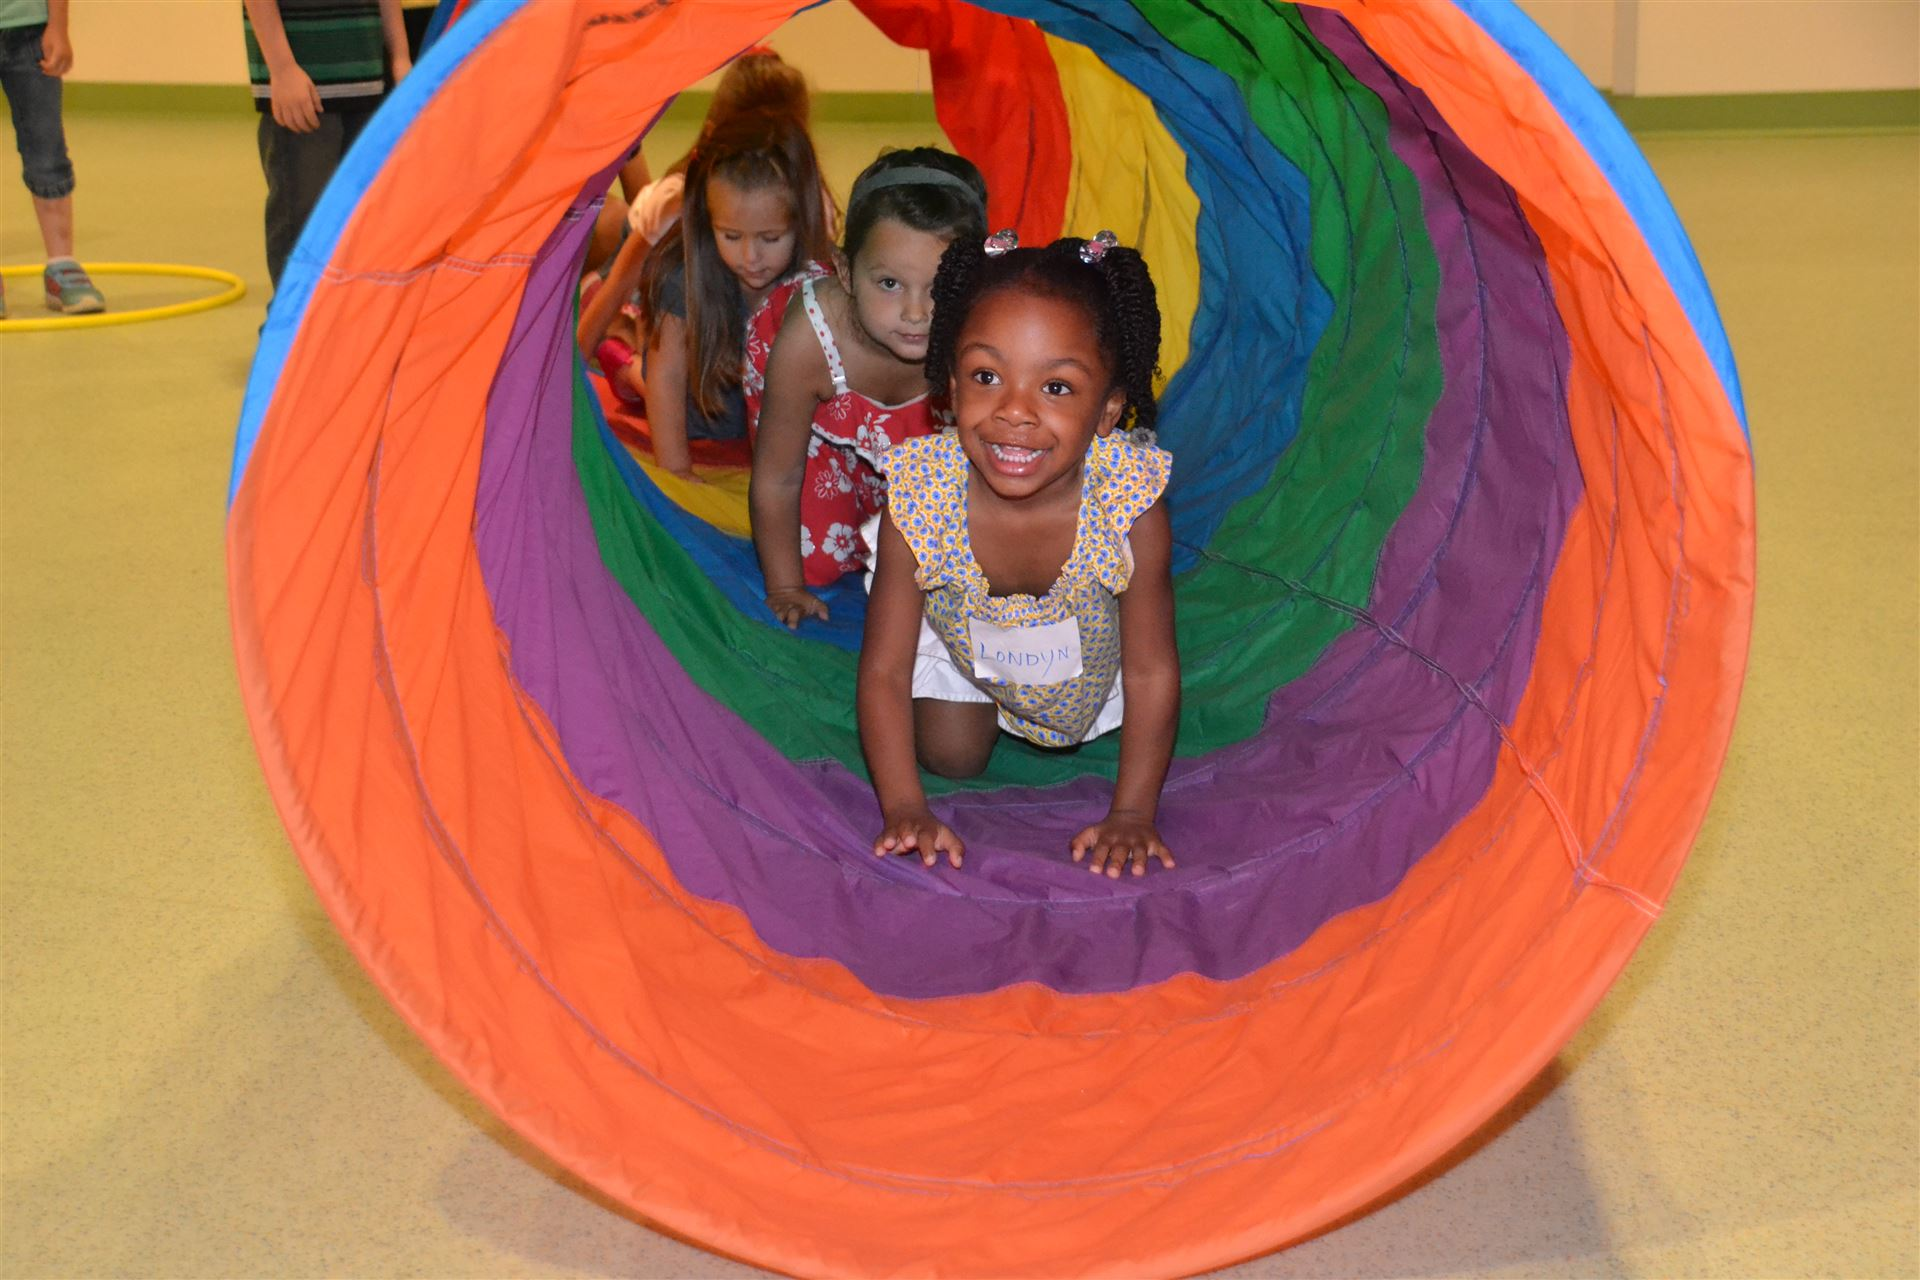 Students in a play tunnel